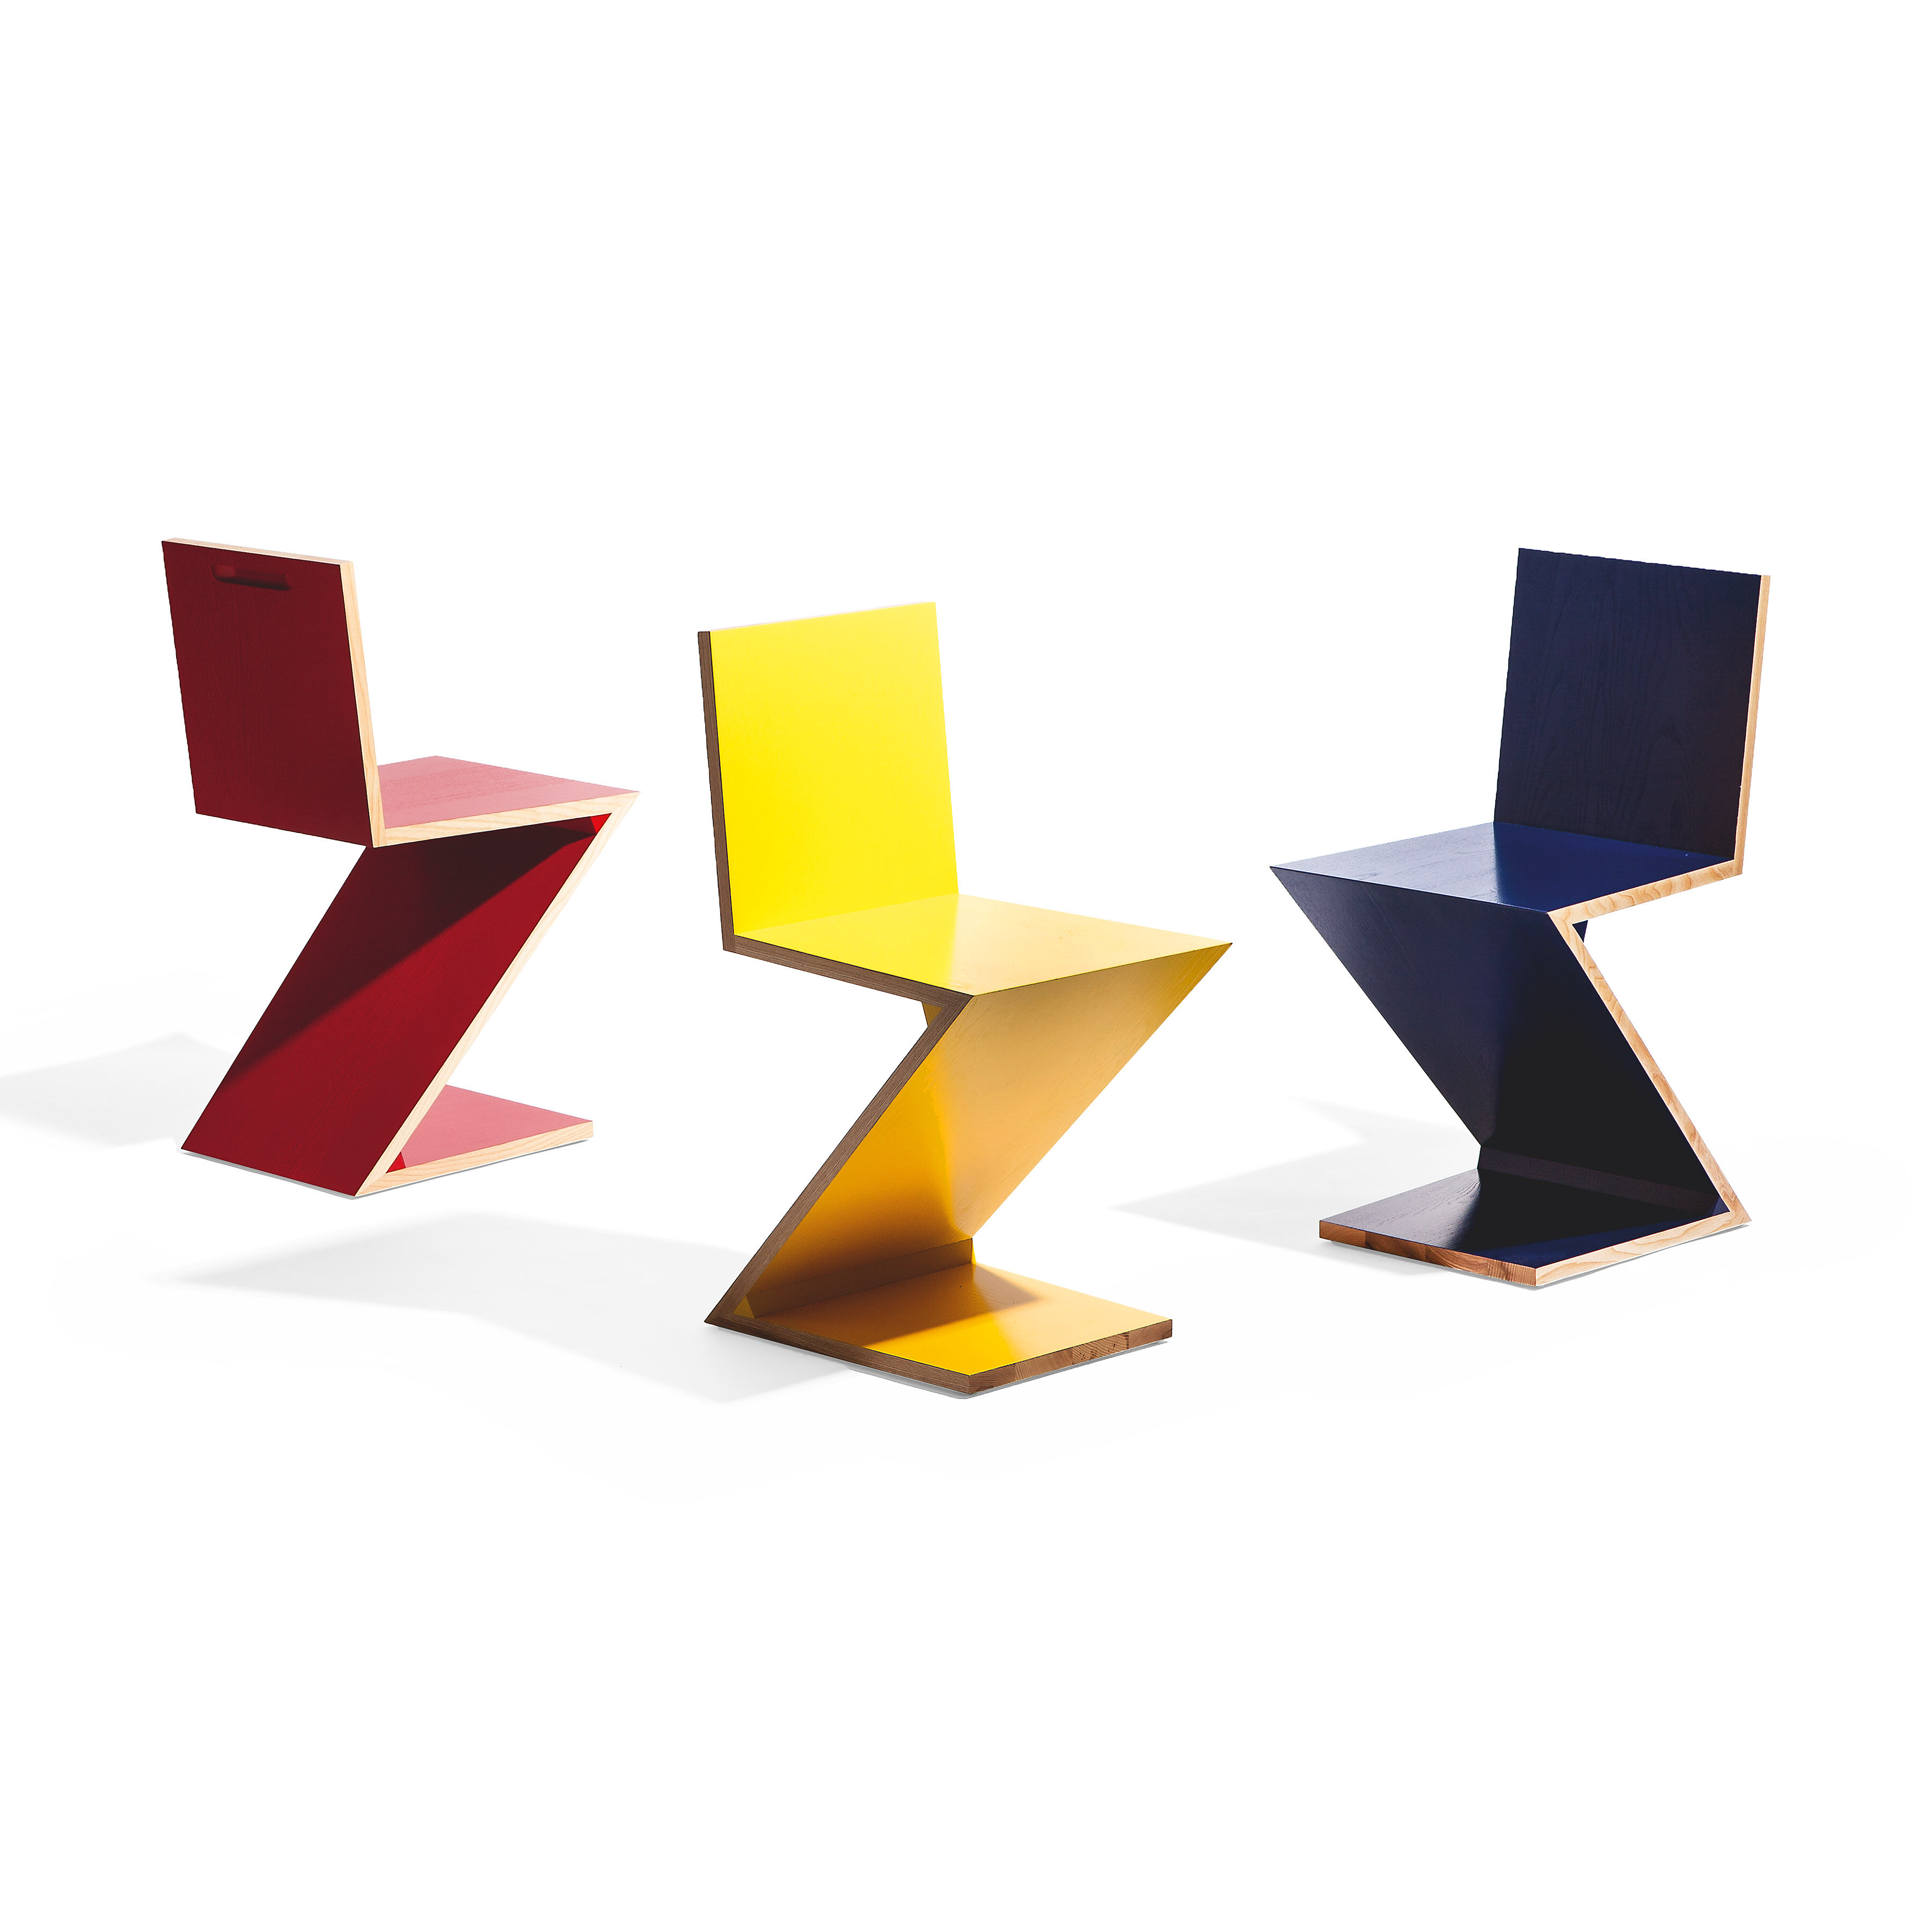 Ordinaire Zig Zag Chair In Color Red